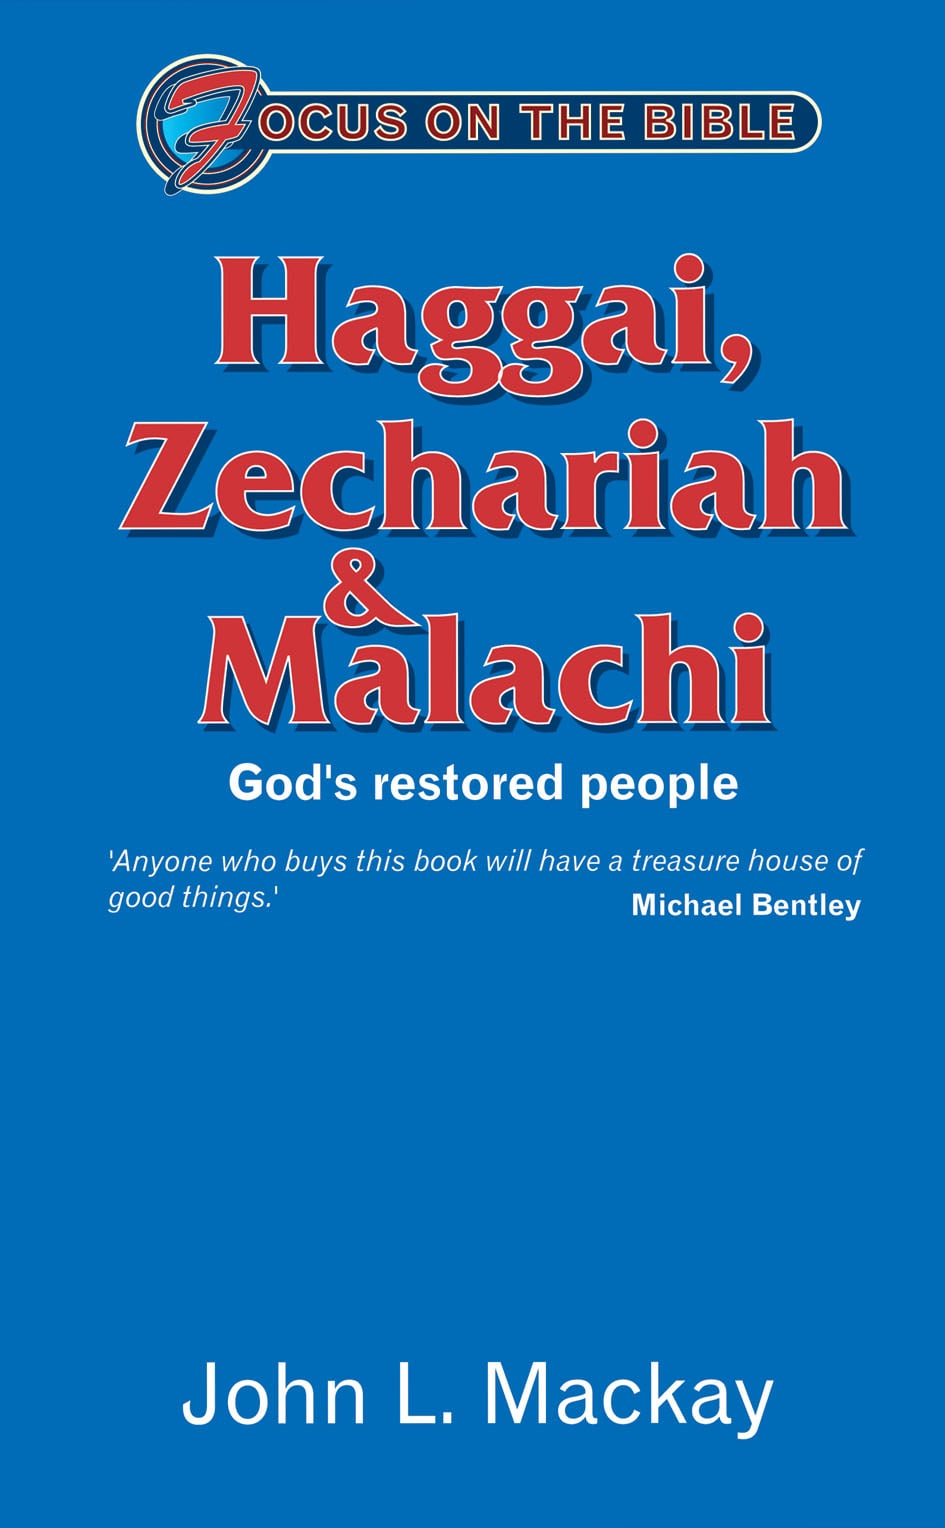 Commentaries On The Times: Top 5 Commentaries On The Book Of Haggai